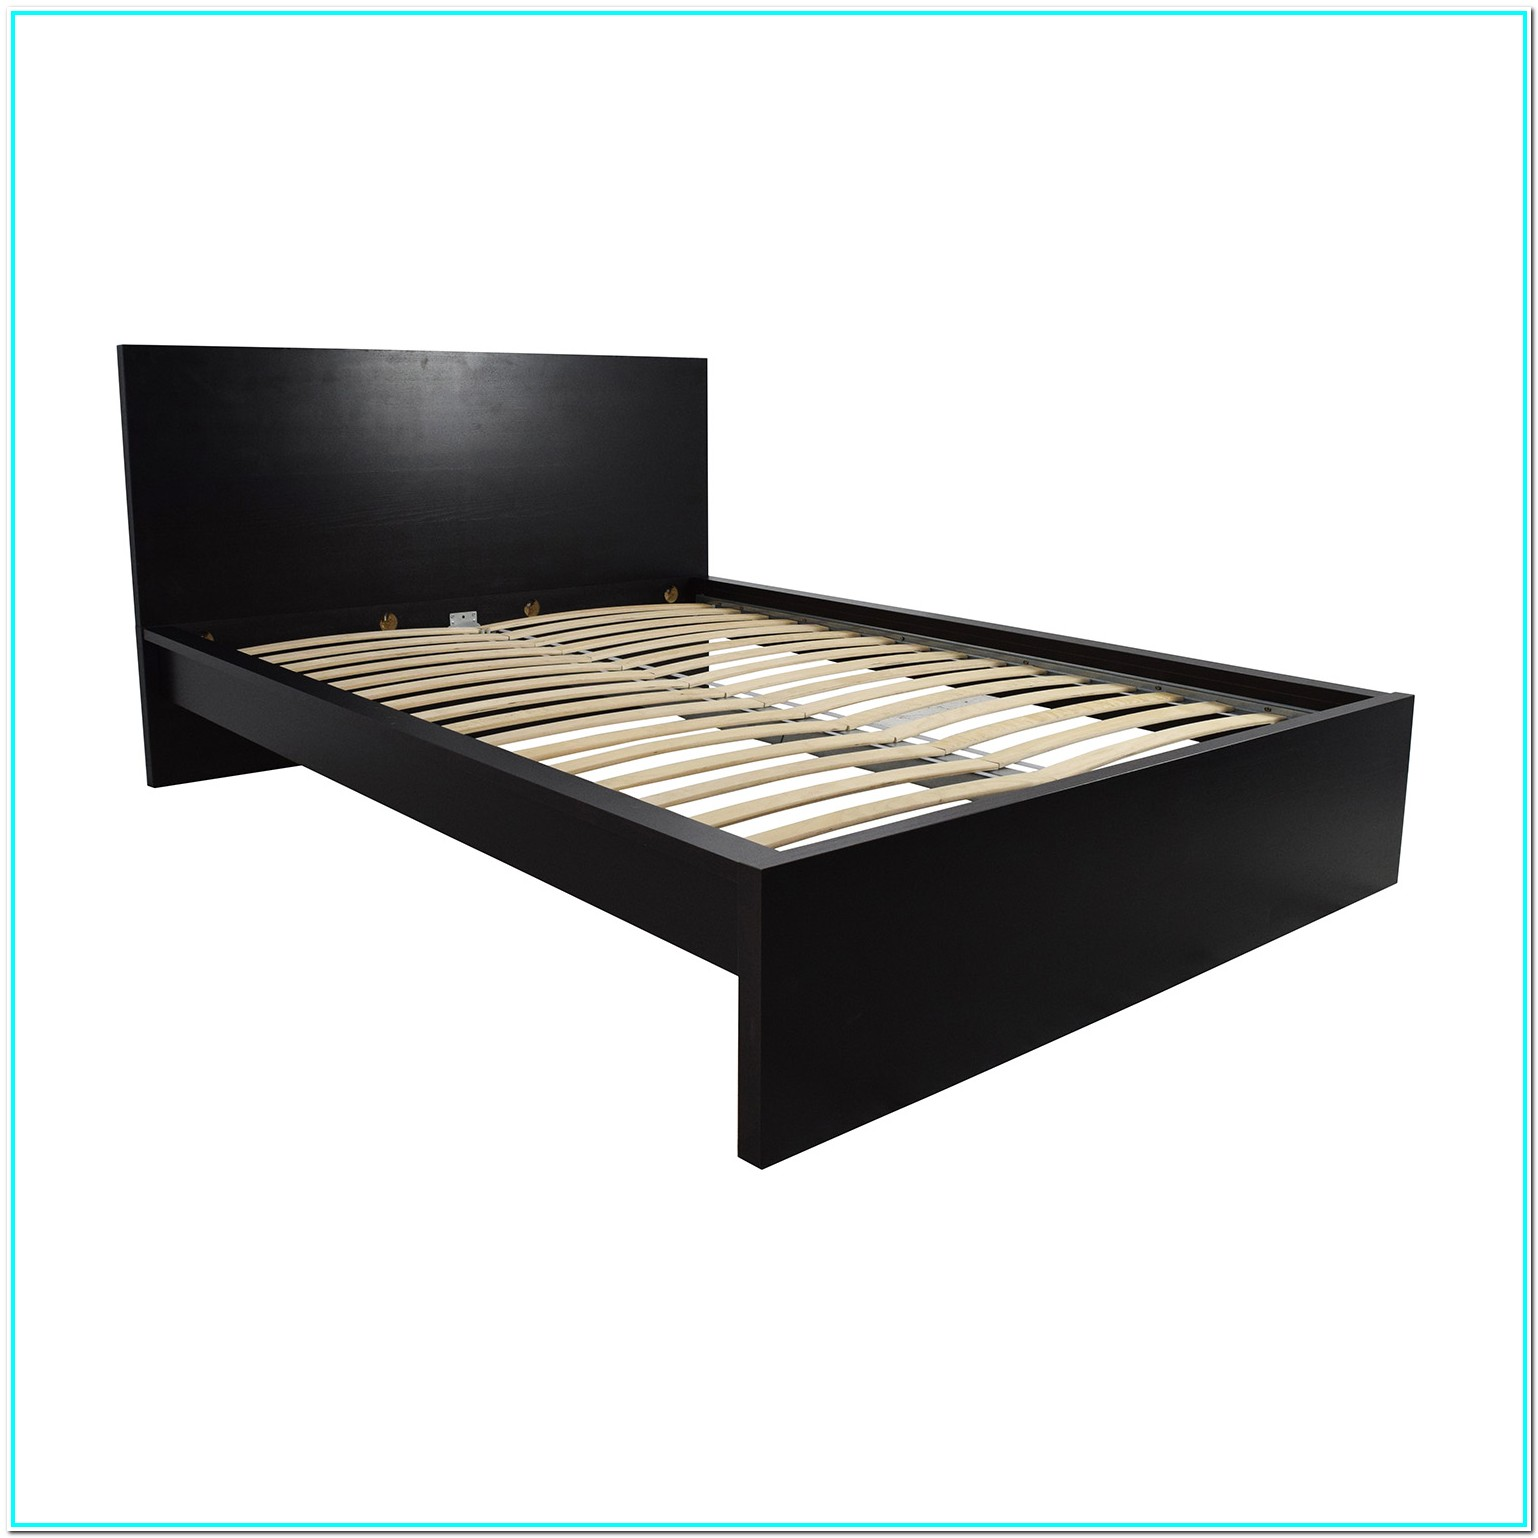 Queen Size Mattress Bed Frame Dimensions